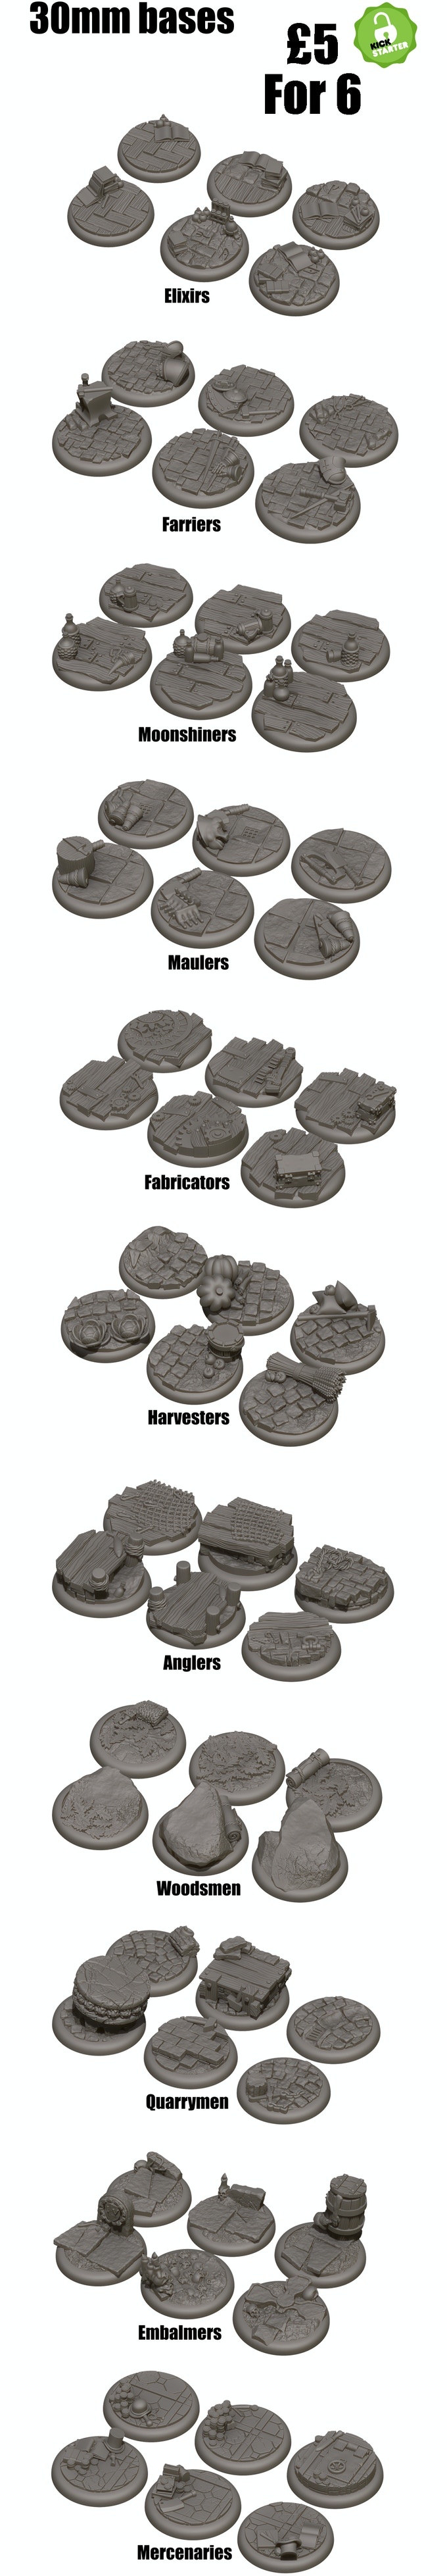 Themed 30mm team bases